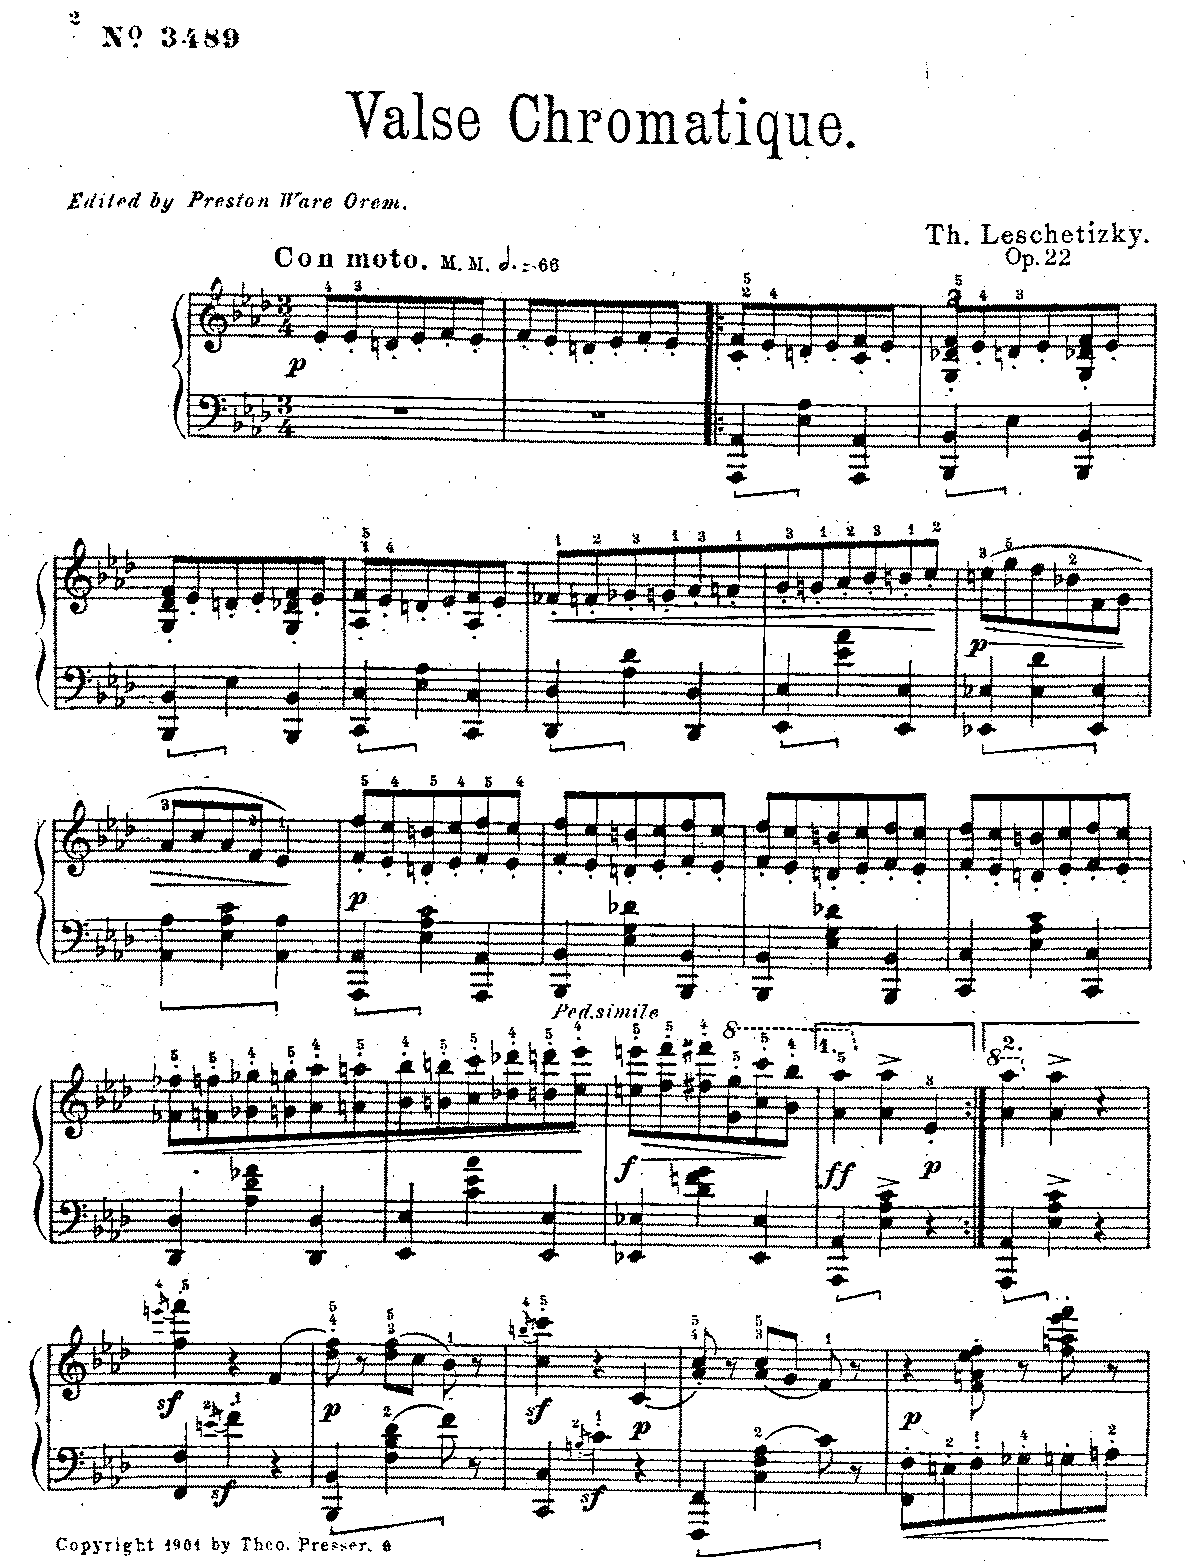 Leschetizky op.22 Valse chromatique.pdf